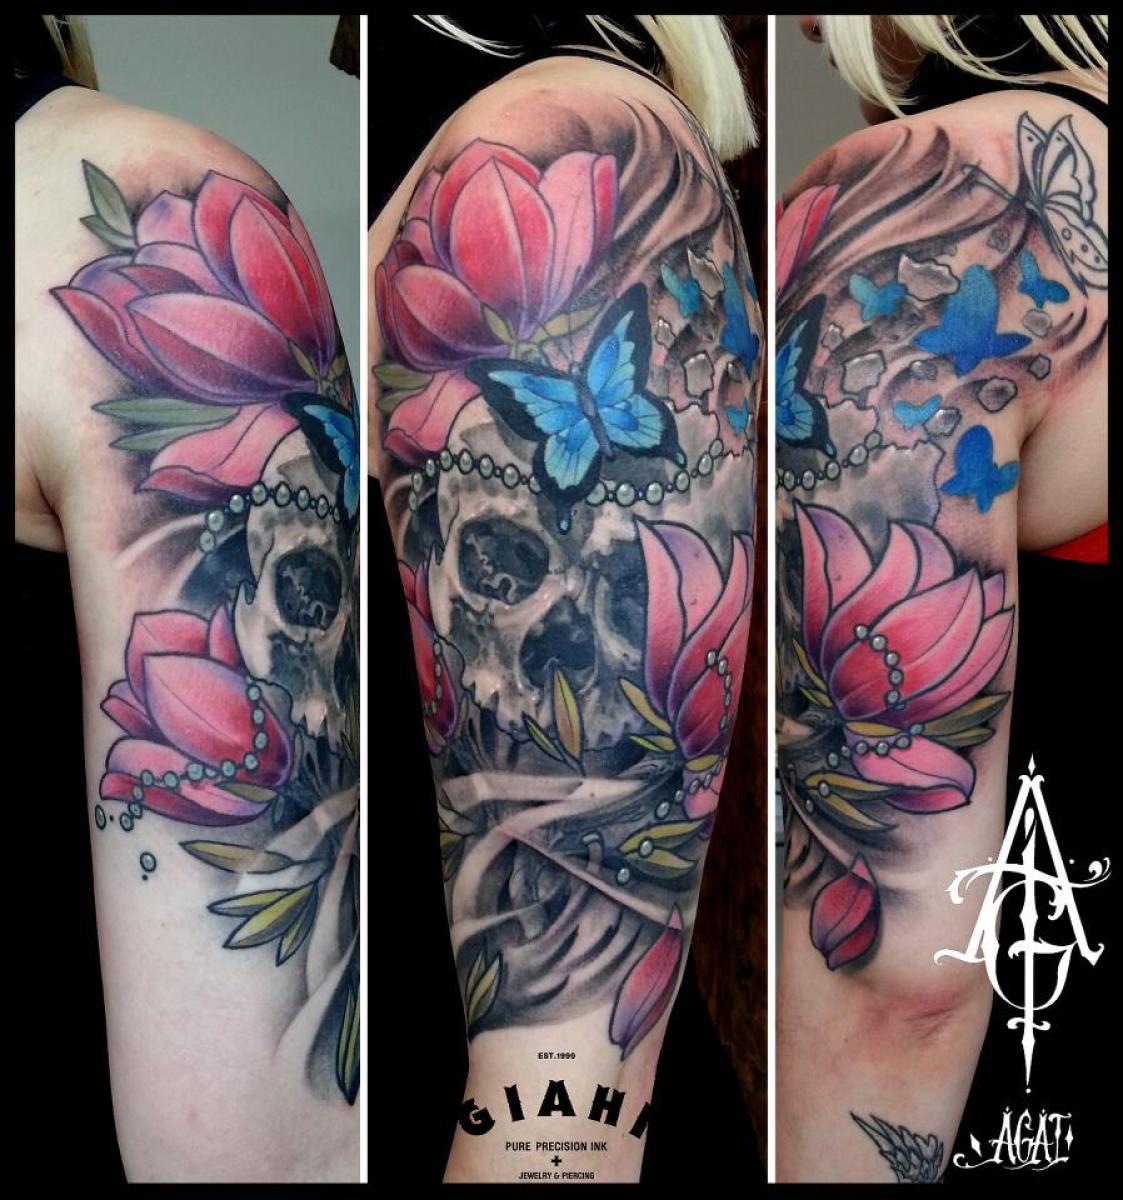 Cracked butterfly flowers skull tattoo by agat artemji for Skull and flowers tattoos